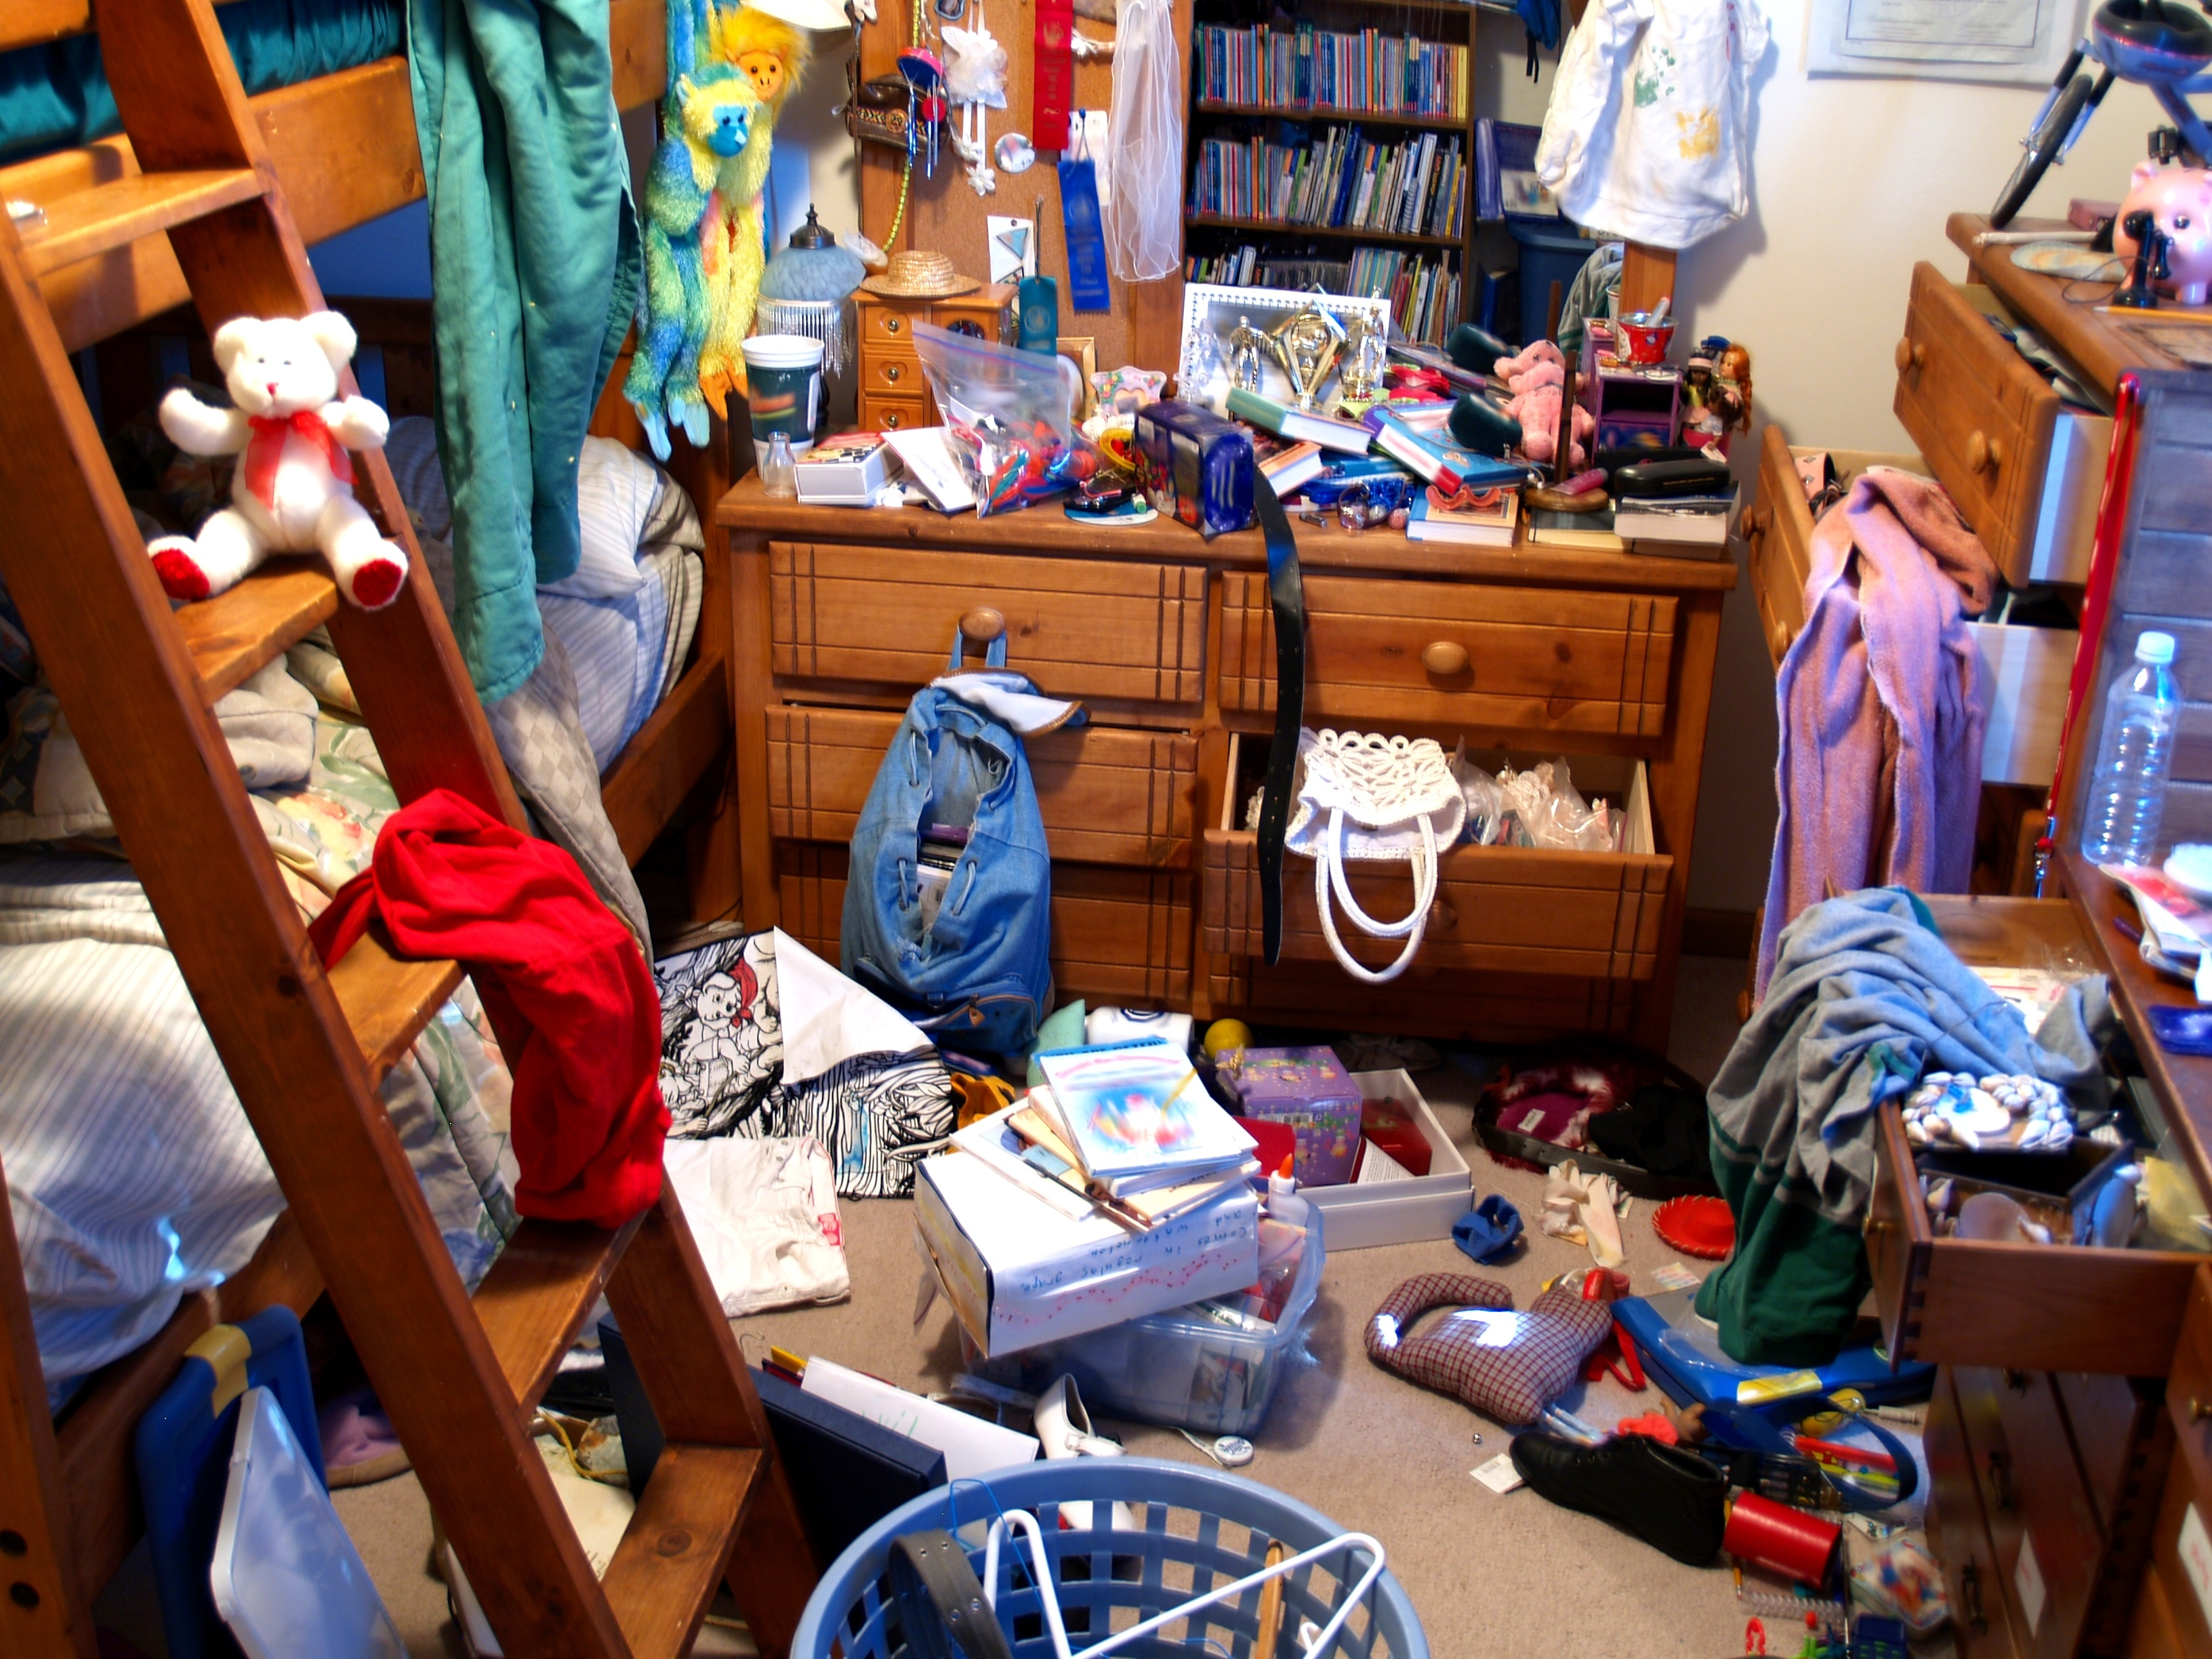 How to organize your room How to clean and organize a small bedroom